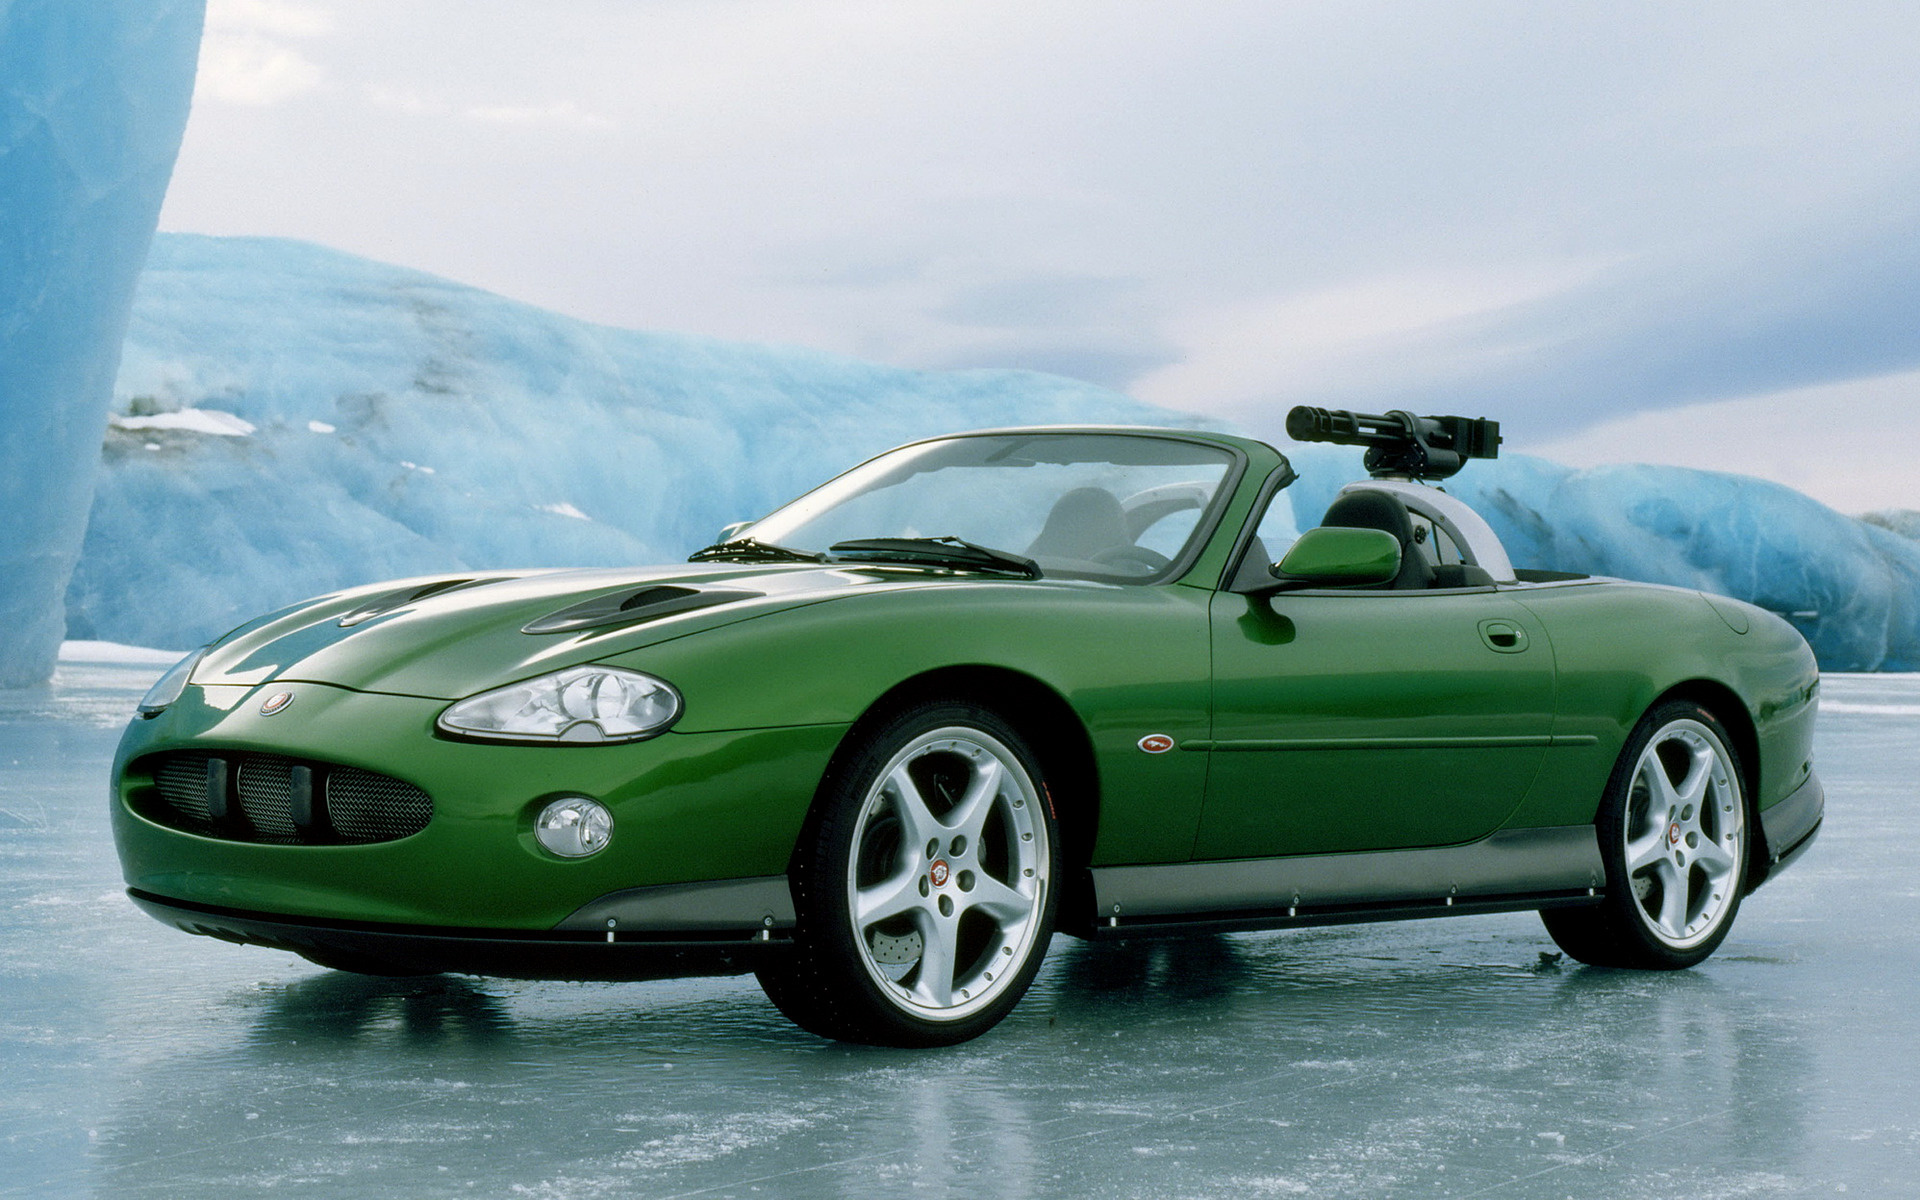 2002 Jaguar XKR Convertible 007 Die Another Day ...